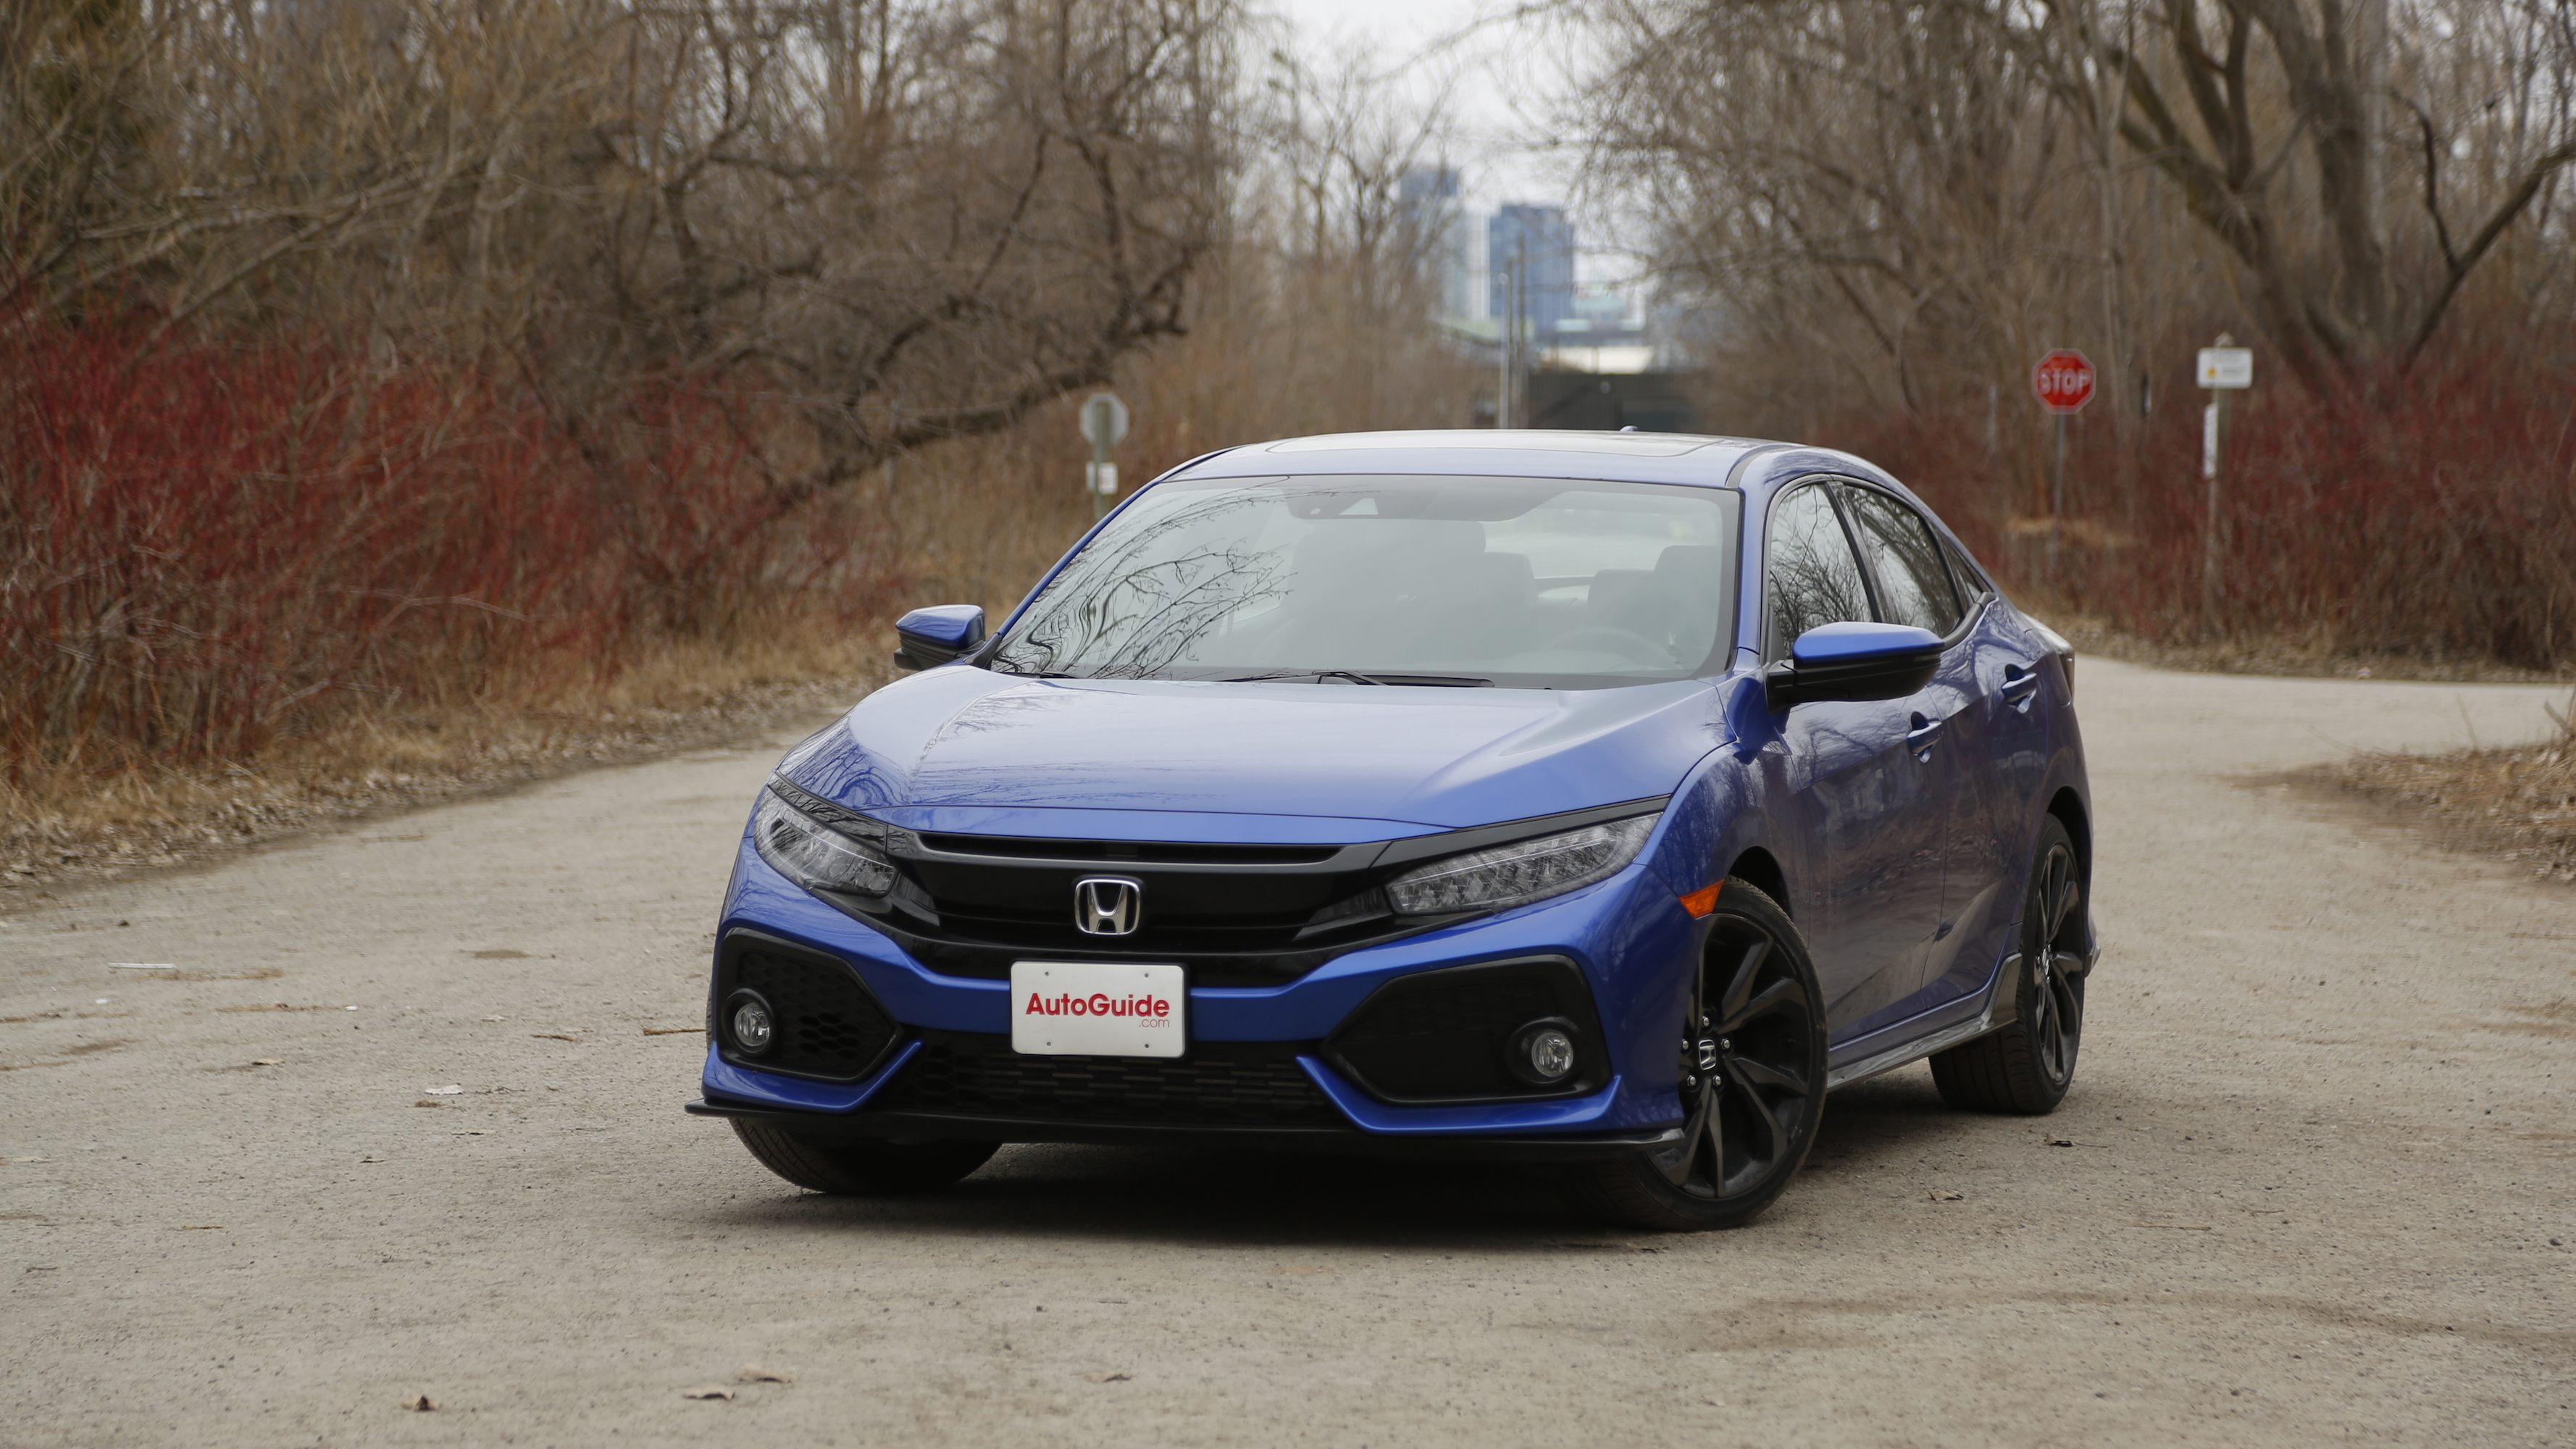 Kekurangan Honda Civic 1 Review